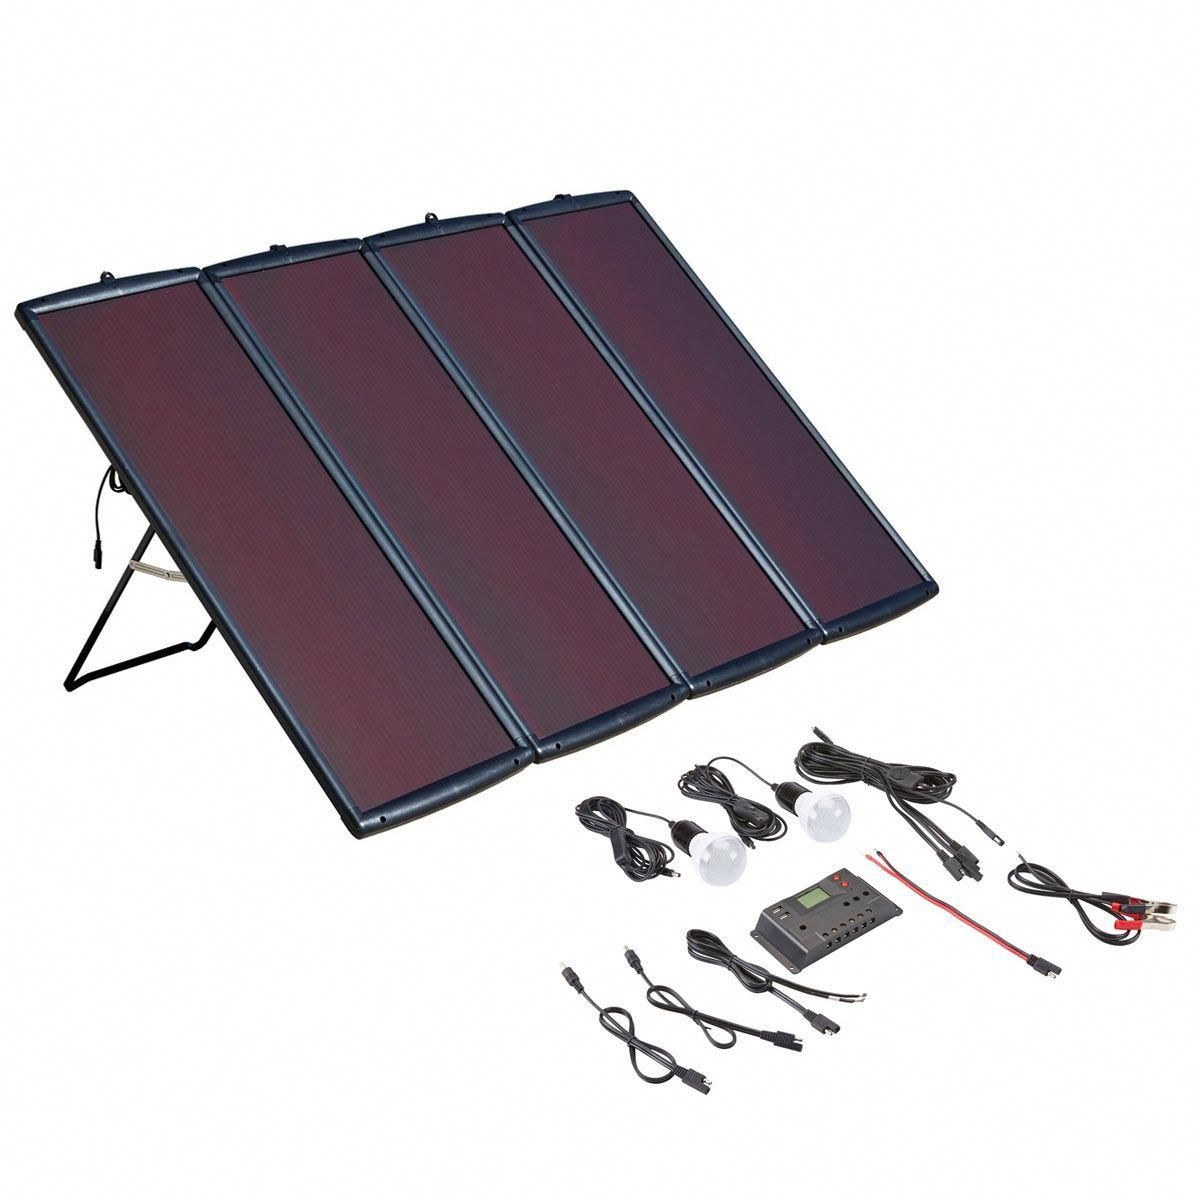 100 Watt Solar Panel Kit With Images Solar Panel Kits 100 Watt Solar Panel Solar Energy Panels